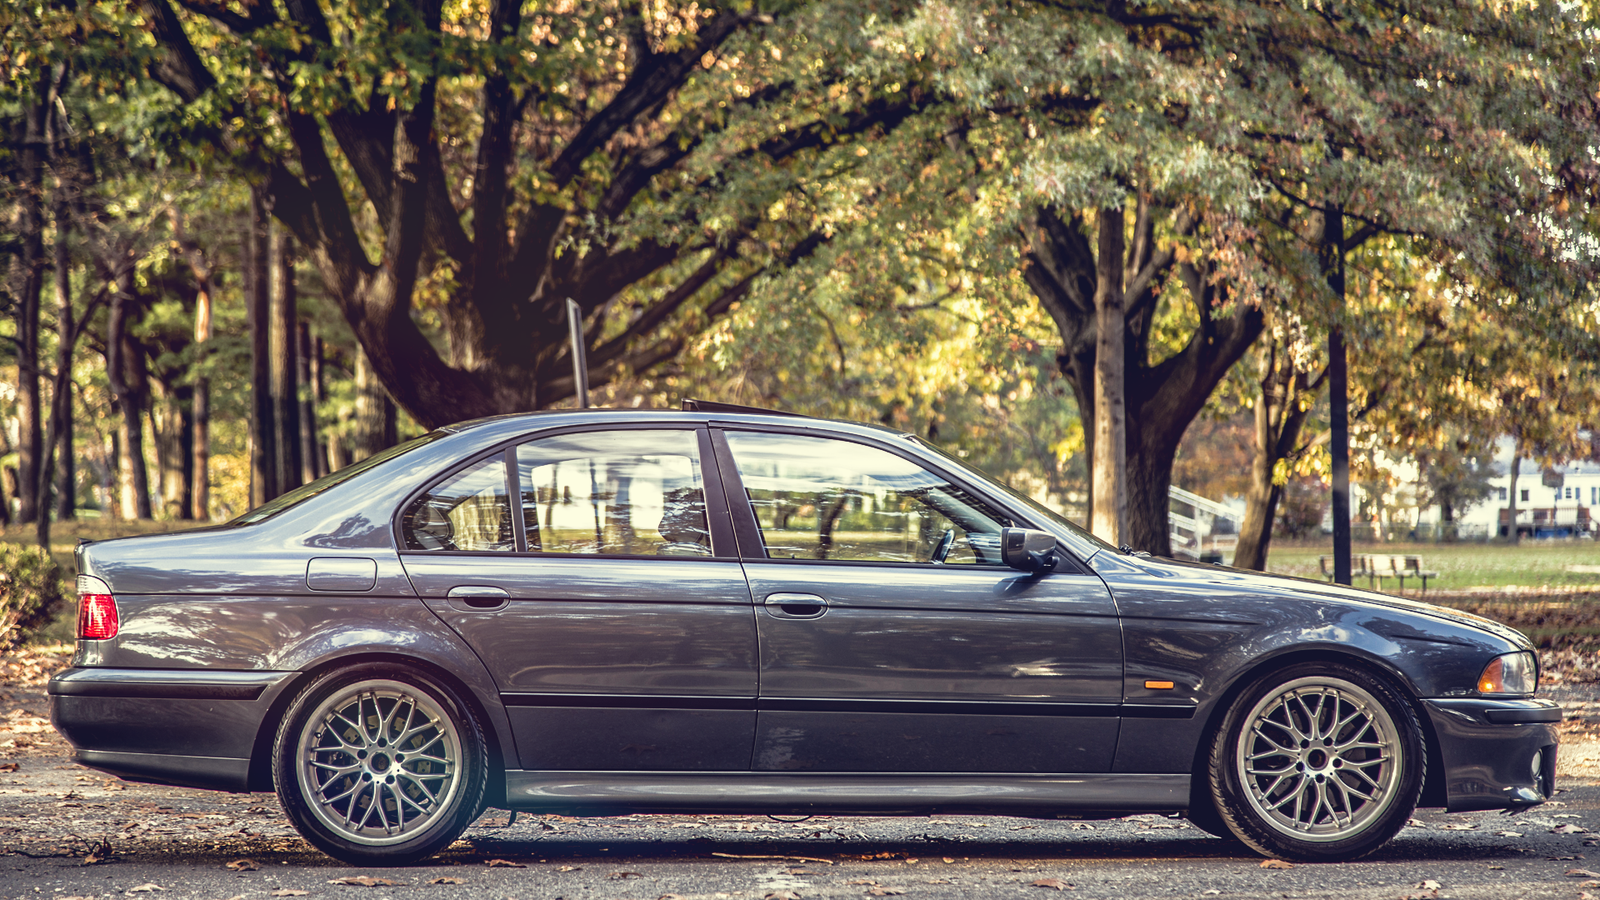 Here Are Ten Of The Best 8-Cylinder Cars On eBay For Less Than $8,000